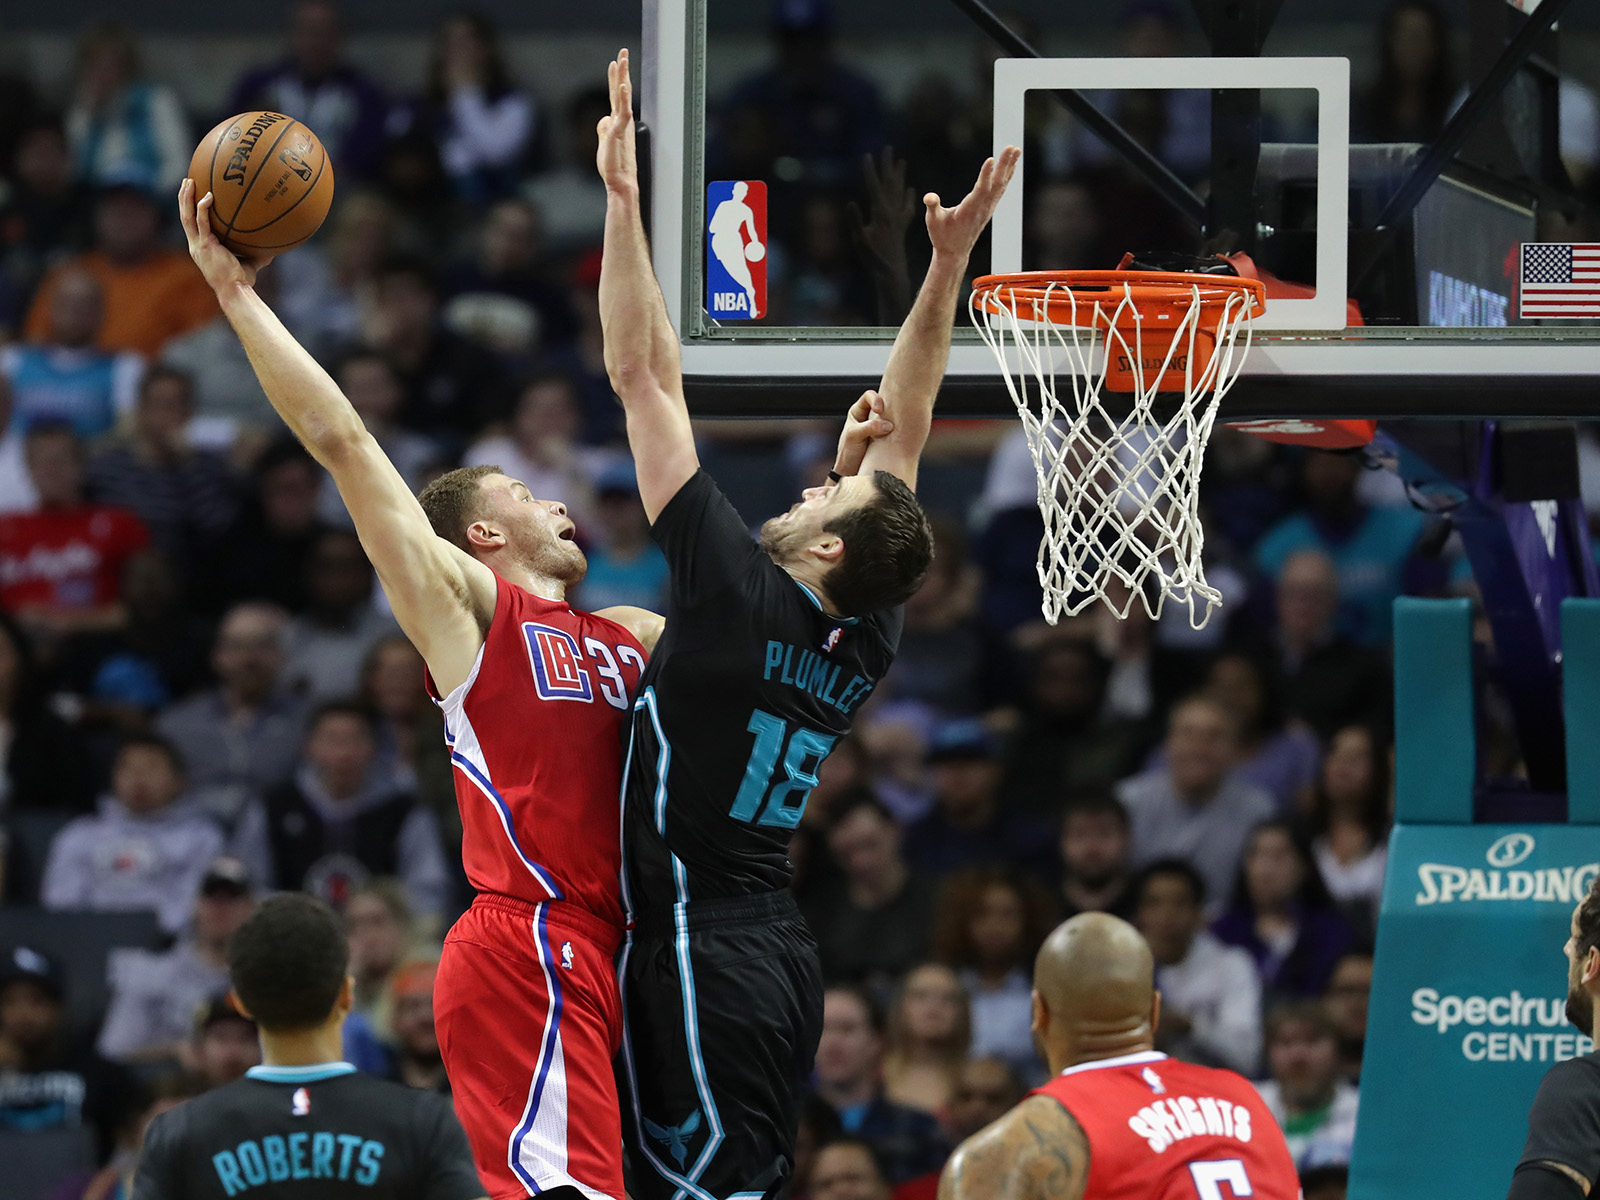 Blake Griffin meets with Miles Plumlee at the rim during a game against the Charlotte Hornets.